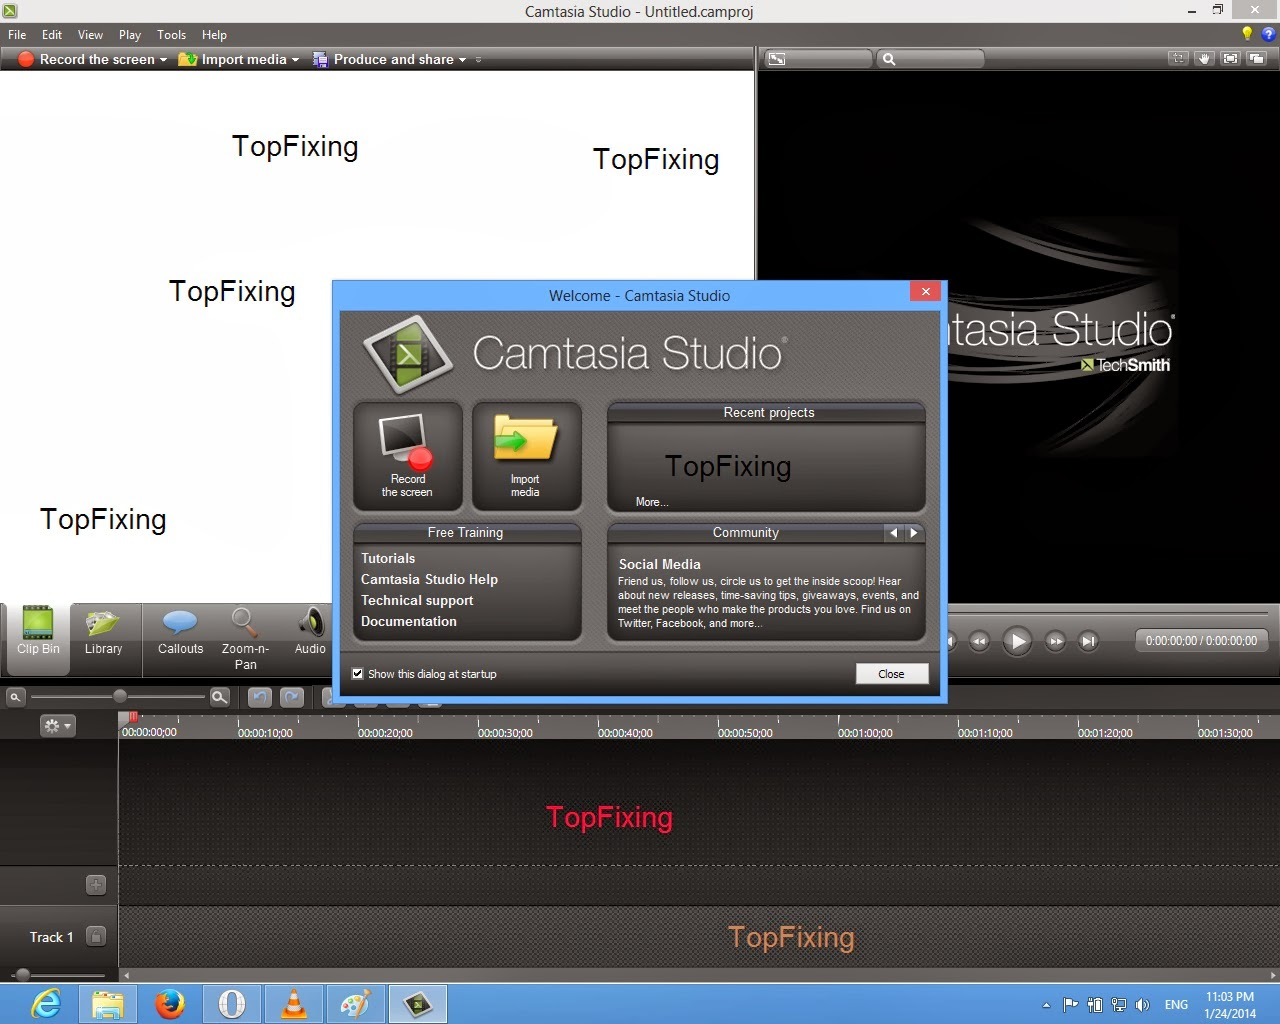 camtasia version 8